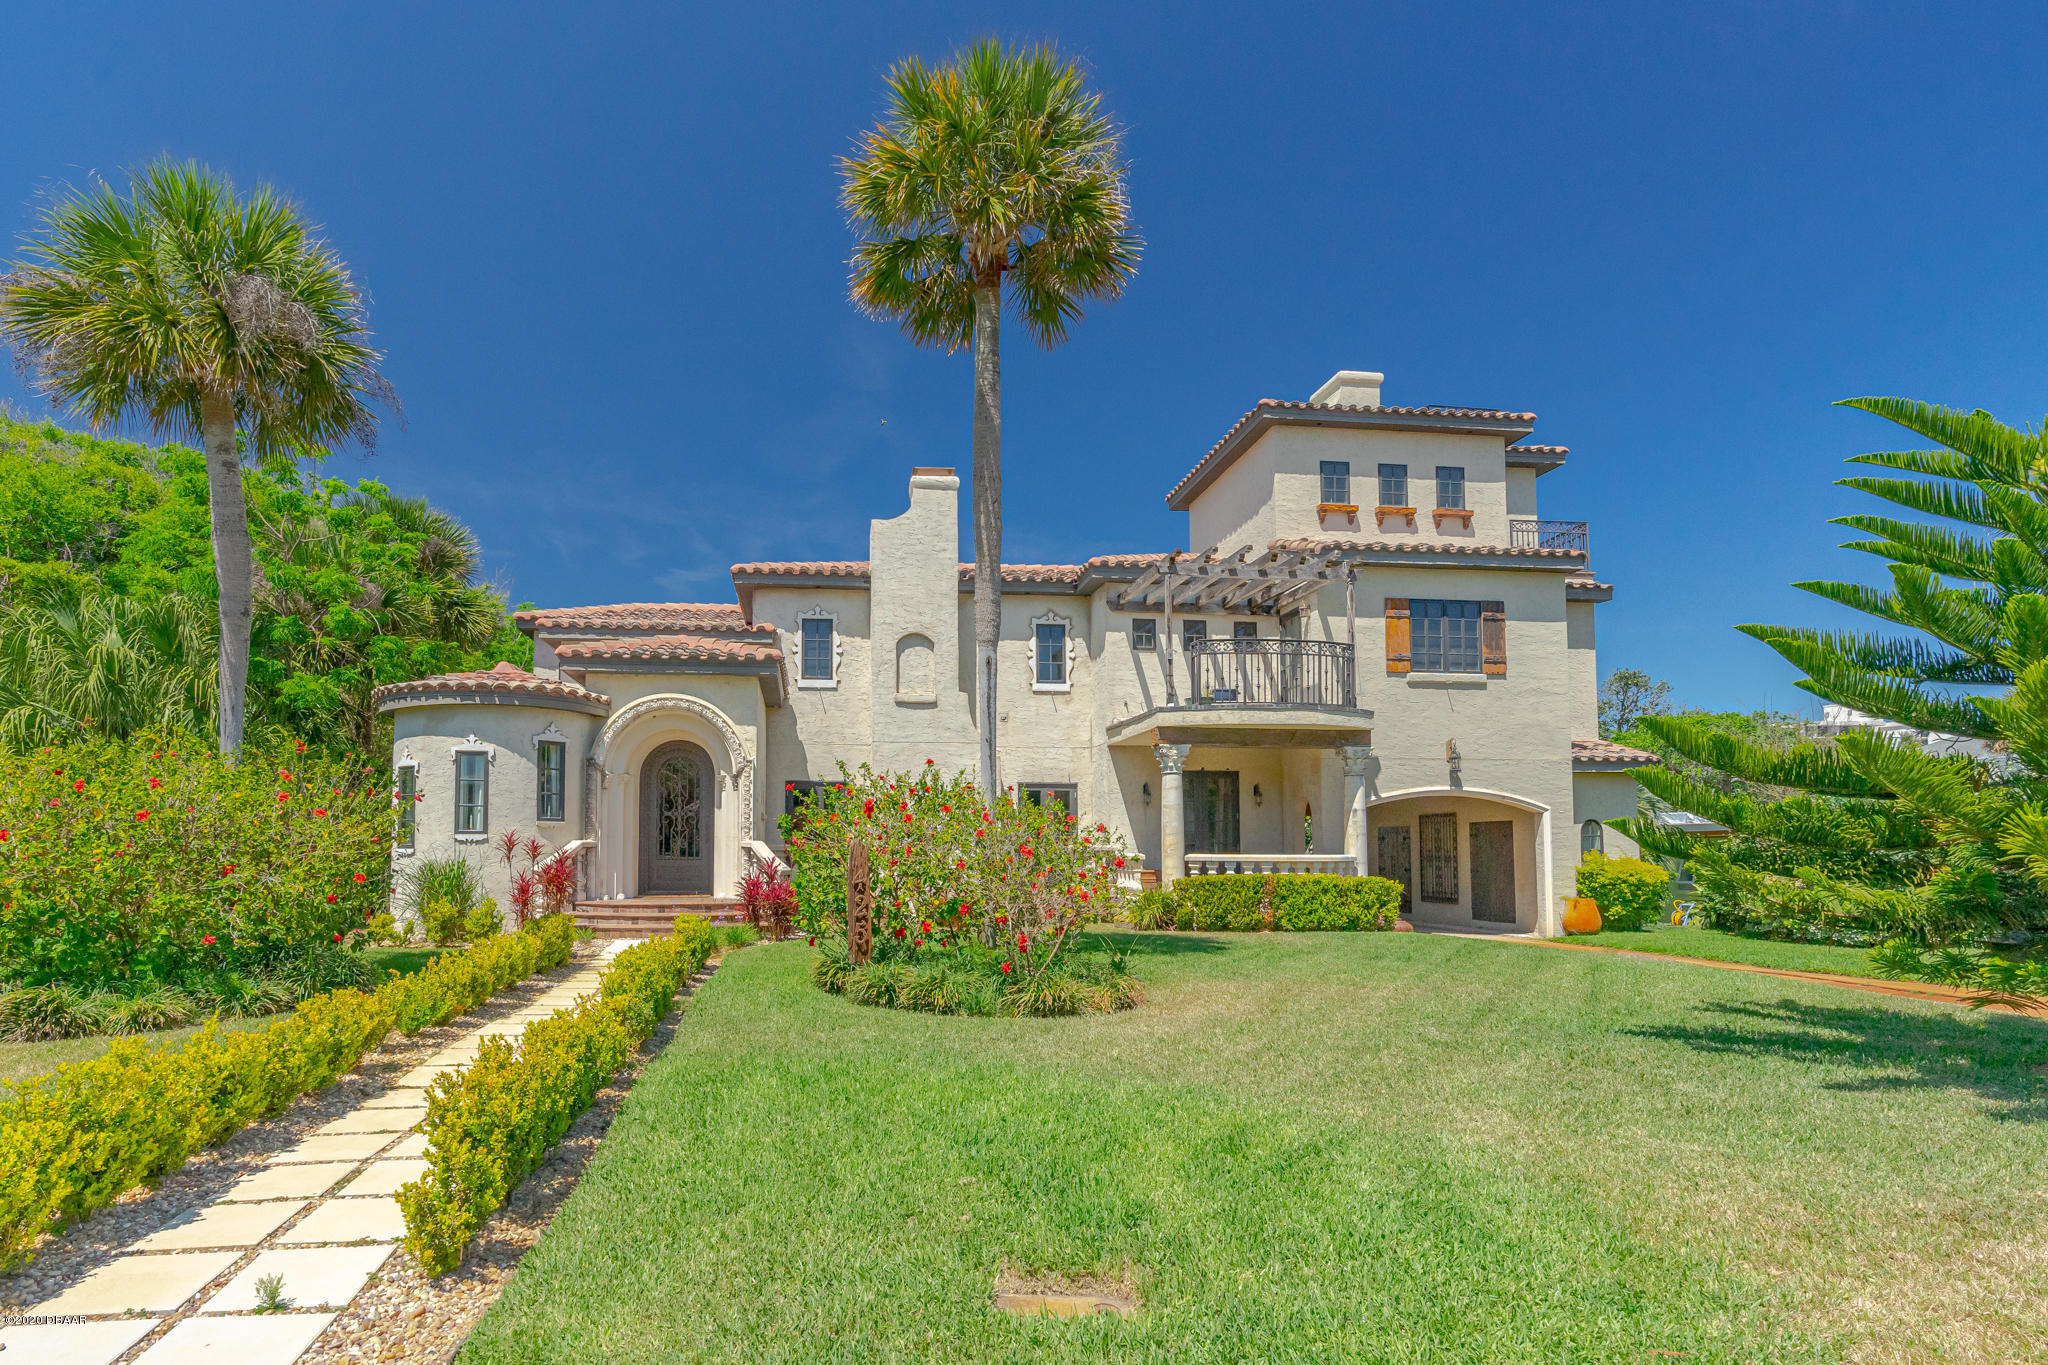 One of Daytona Beach Shores 5 Bedroom Homes for Sale at 425 Ocean Dunes Road